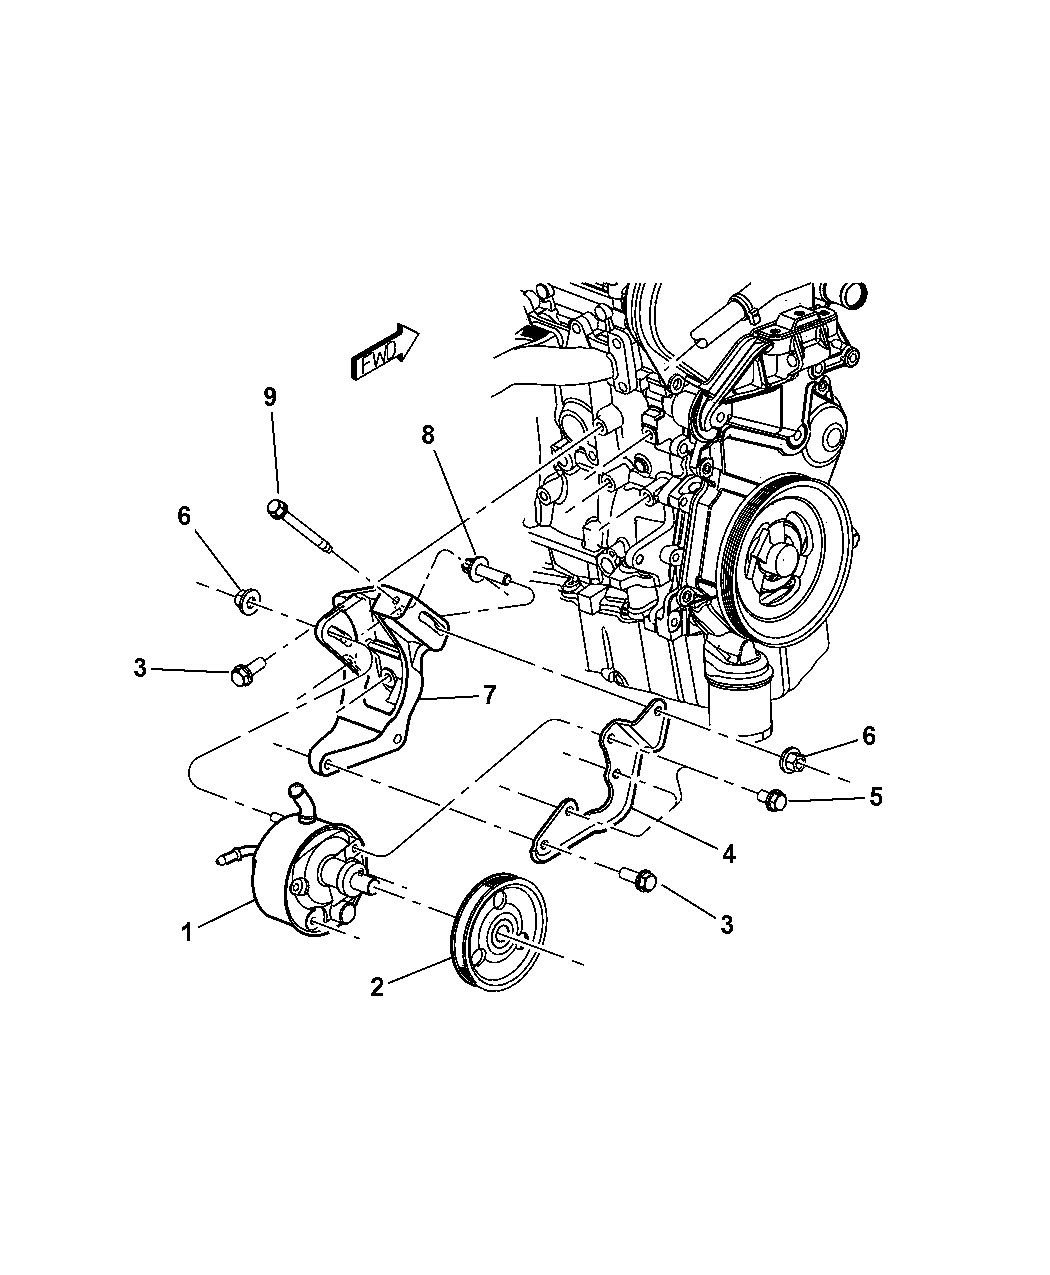 Circuit Electric For Guide: 2007 dodge caravan engine diagram